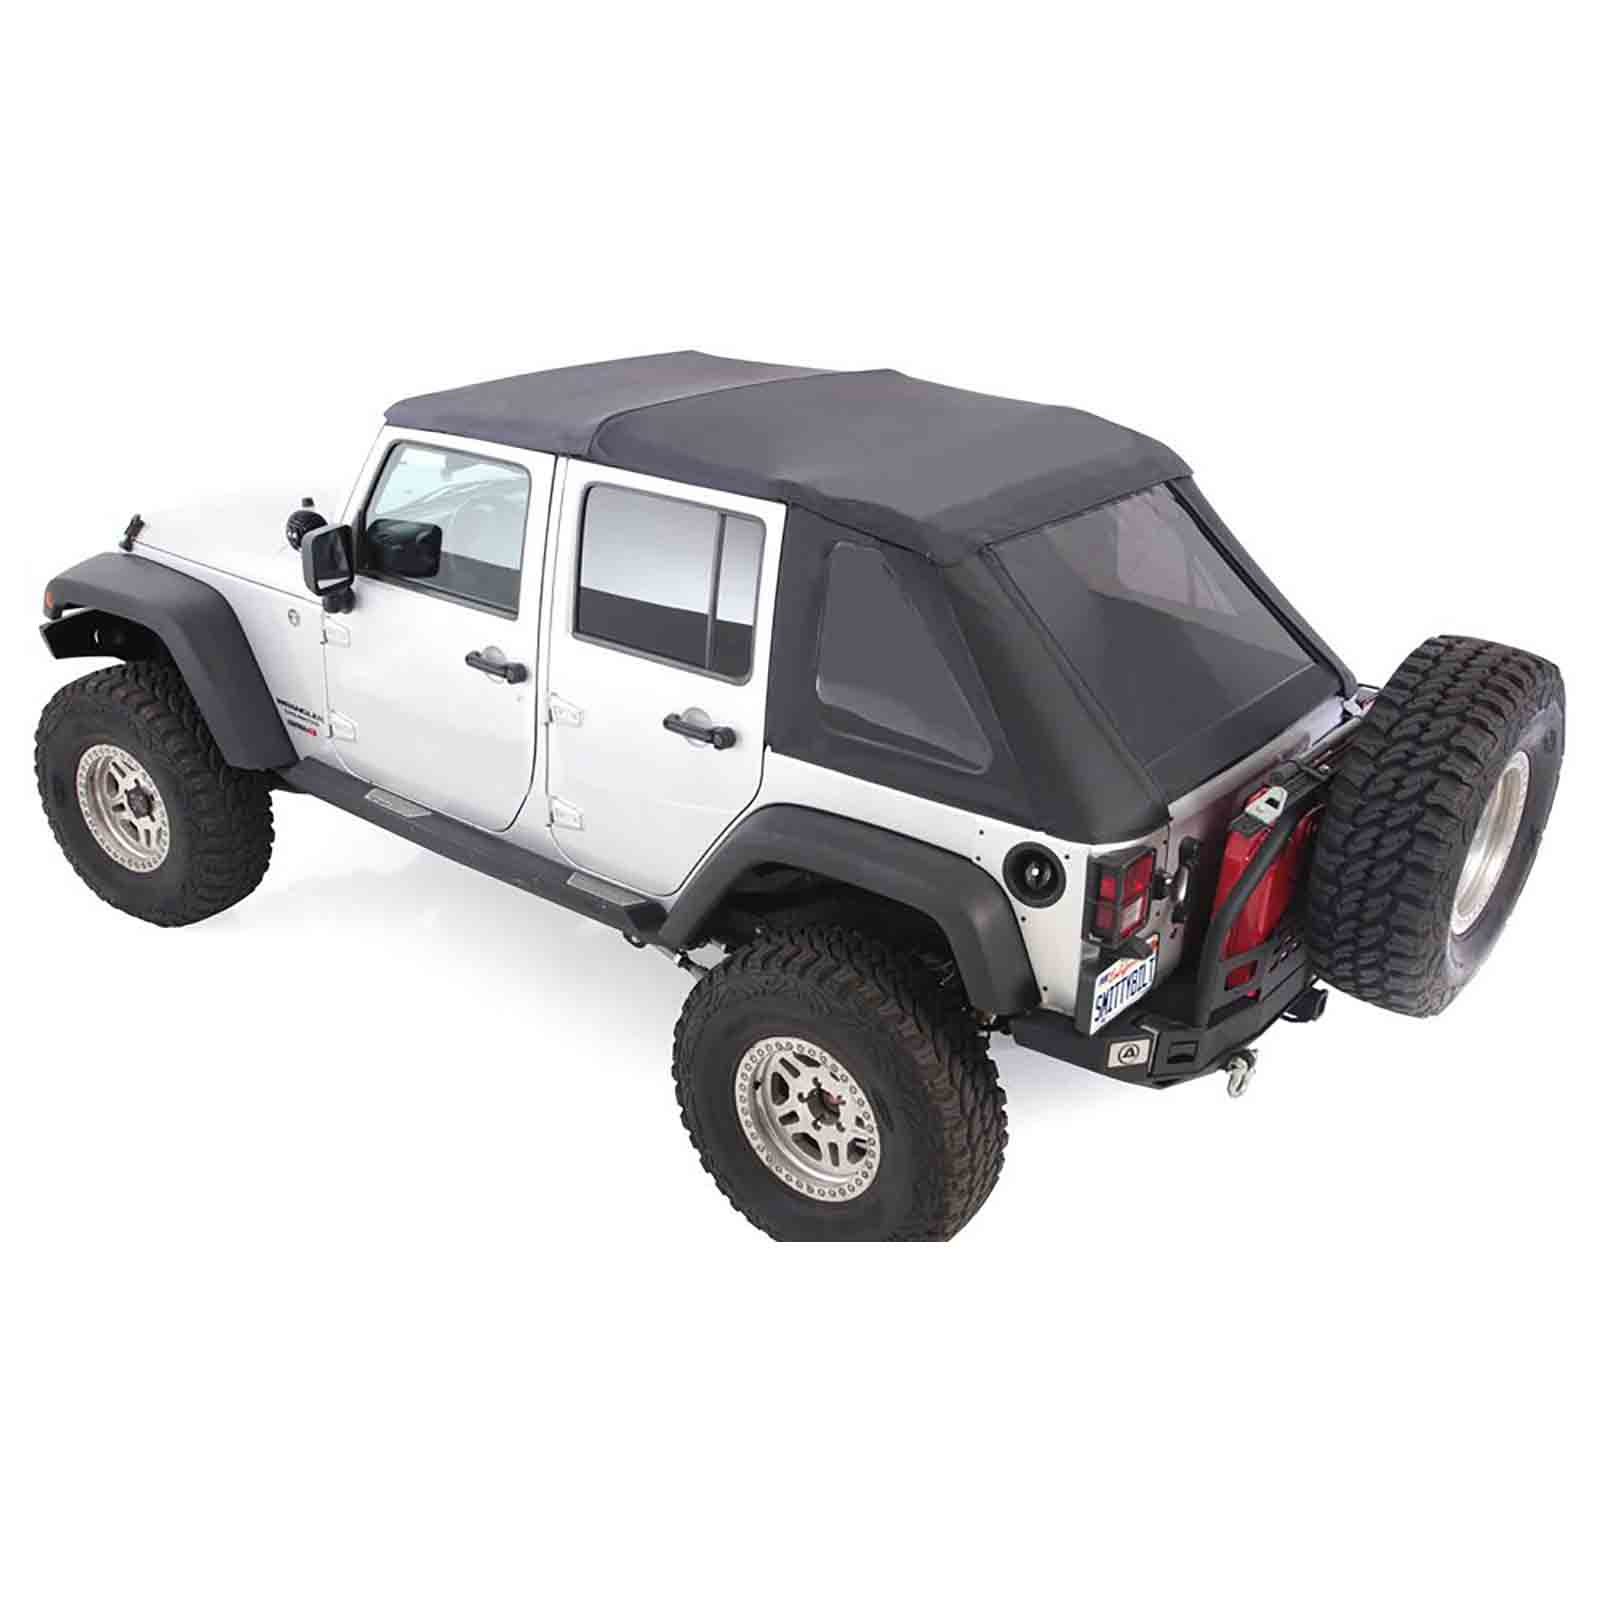 Bowless softtop soft top capottina wrangler jk 07 17 4p con vetri scuri ricambi jeep